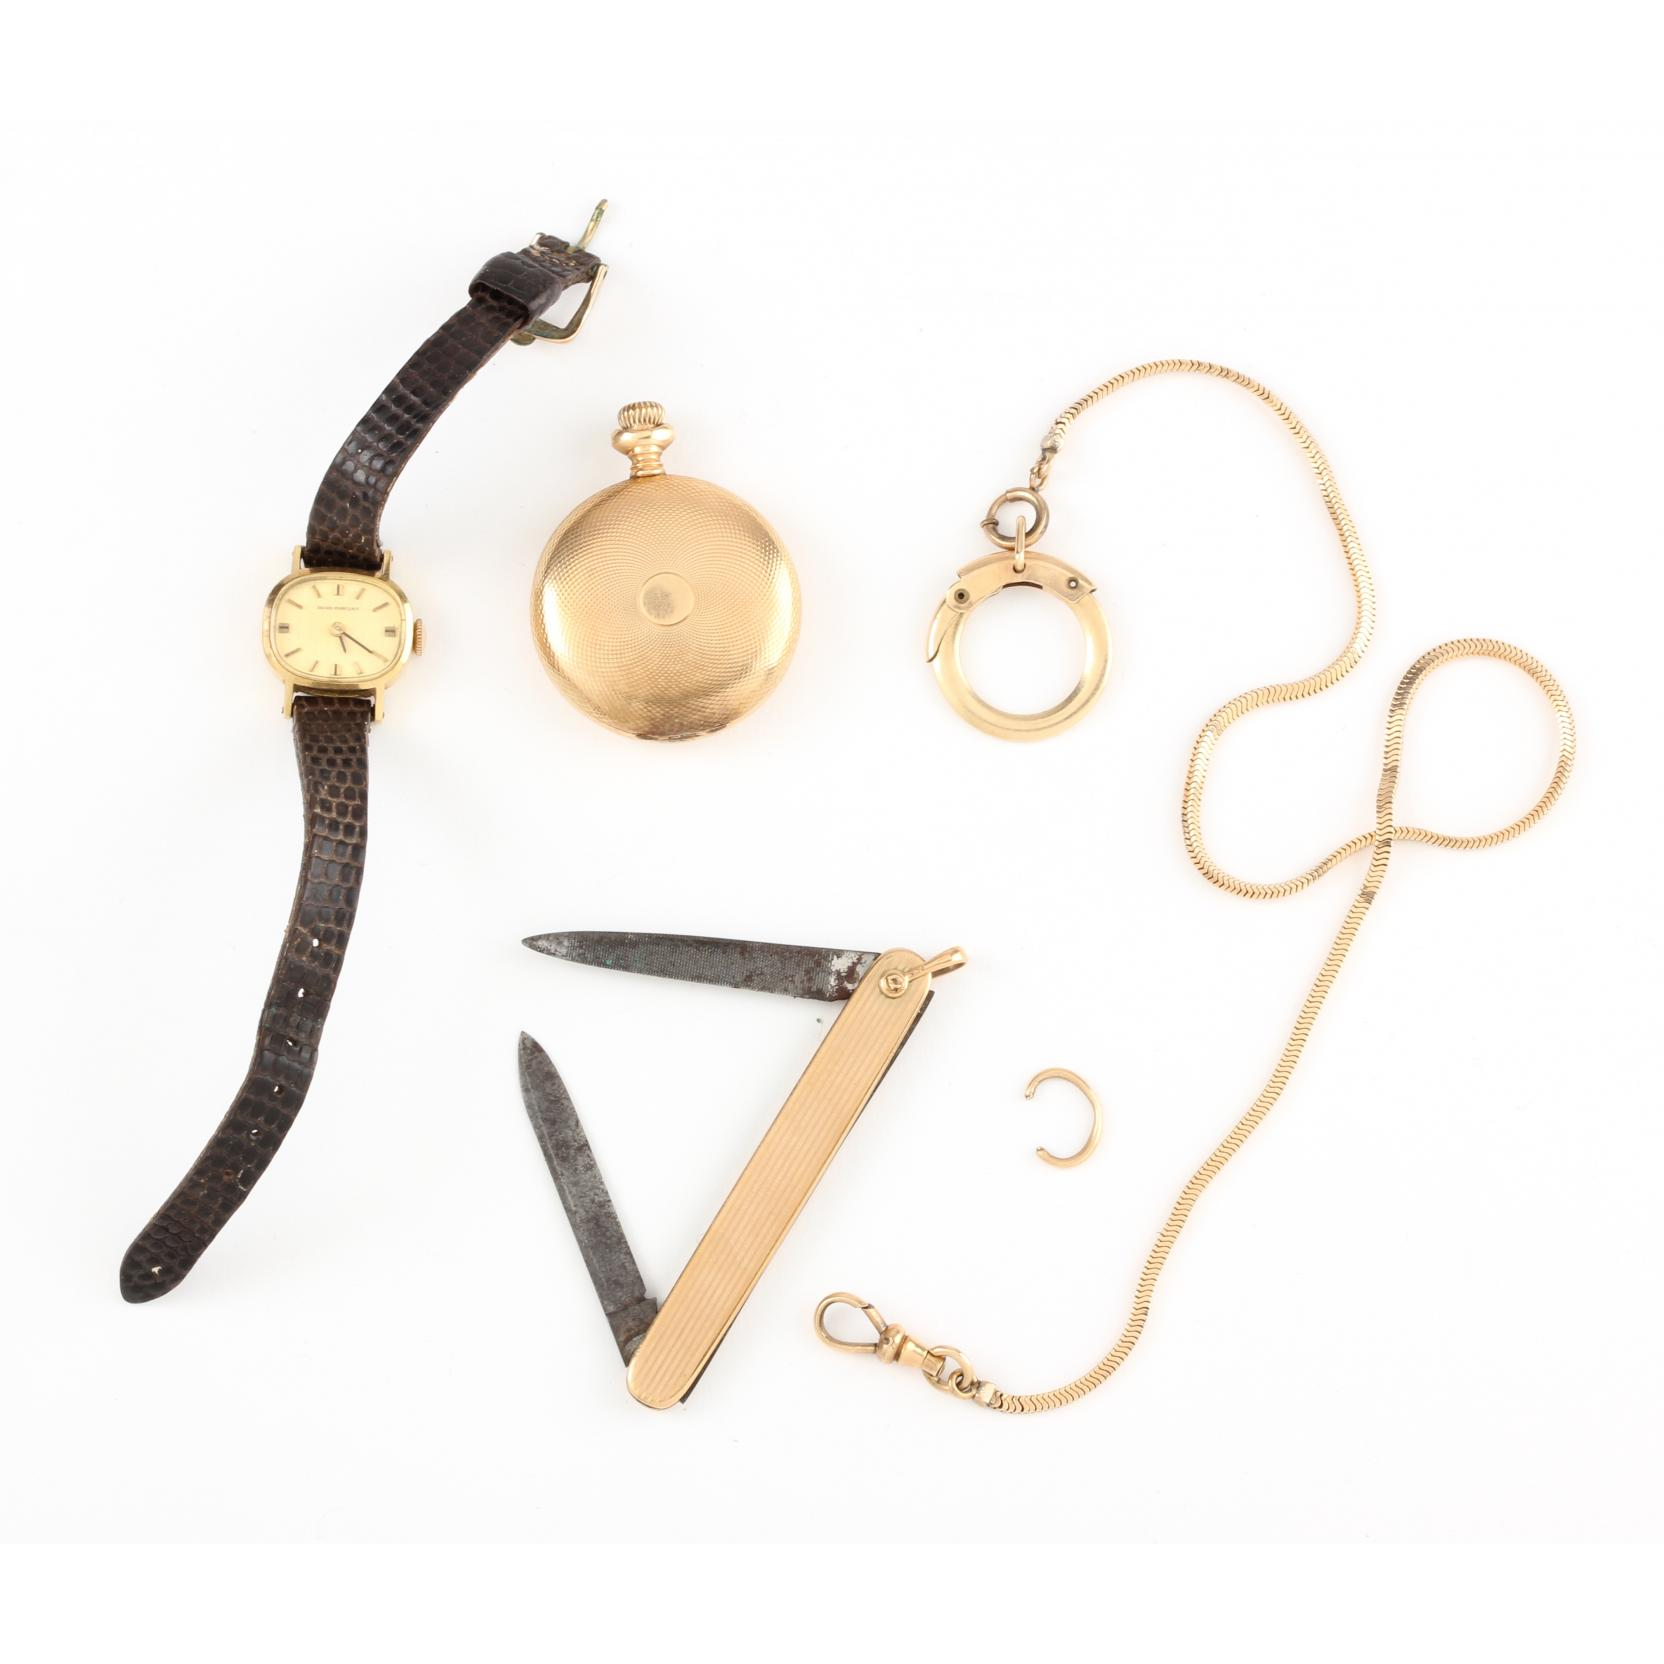 two-vintage-gold-pocket-watches-and-a-10kt-gold-pocket-knife